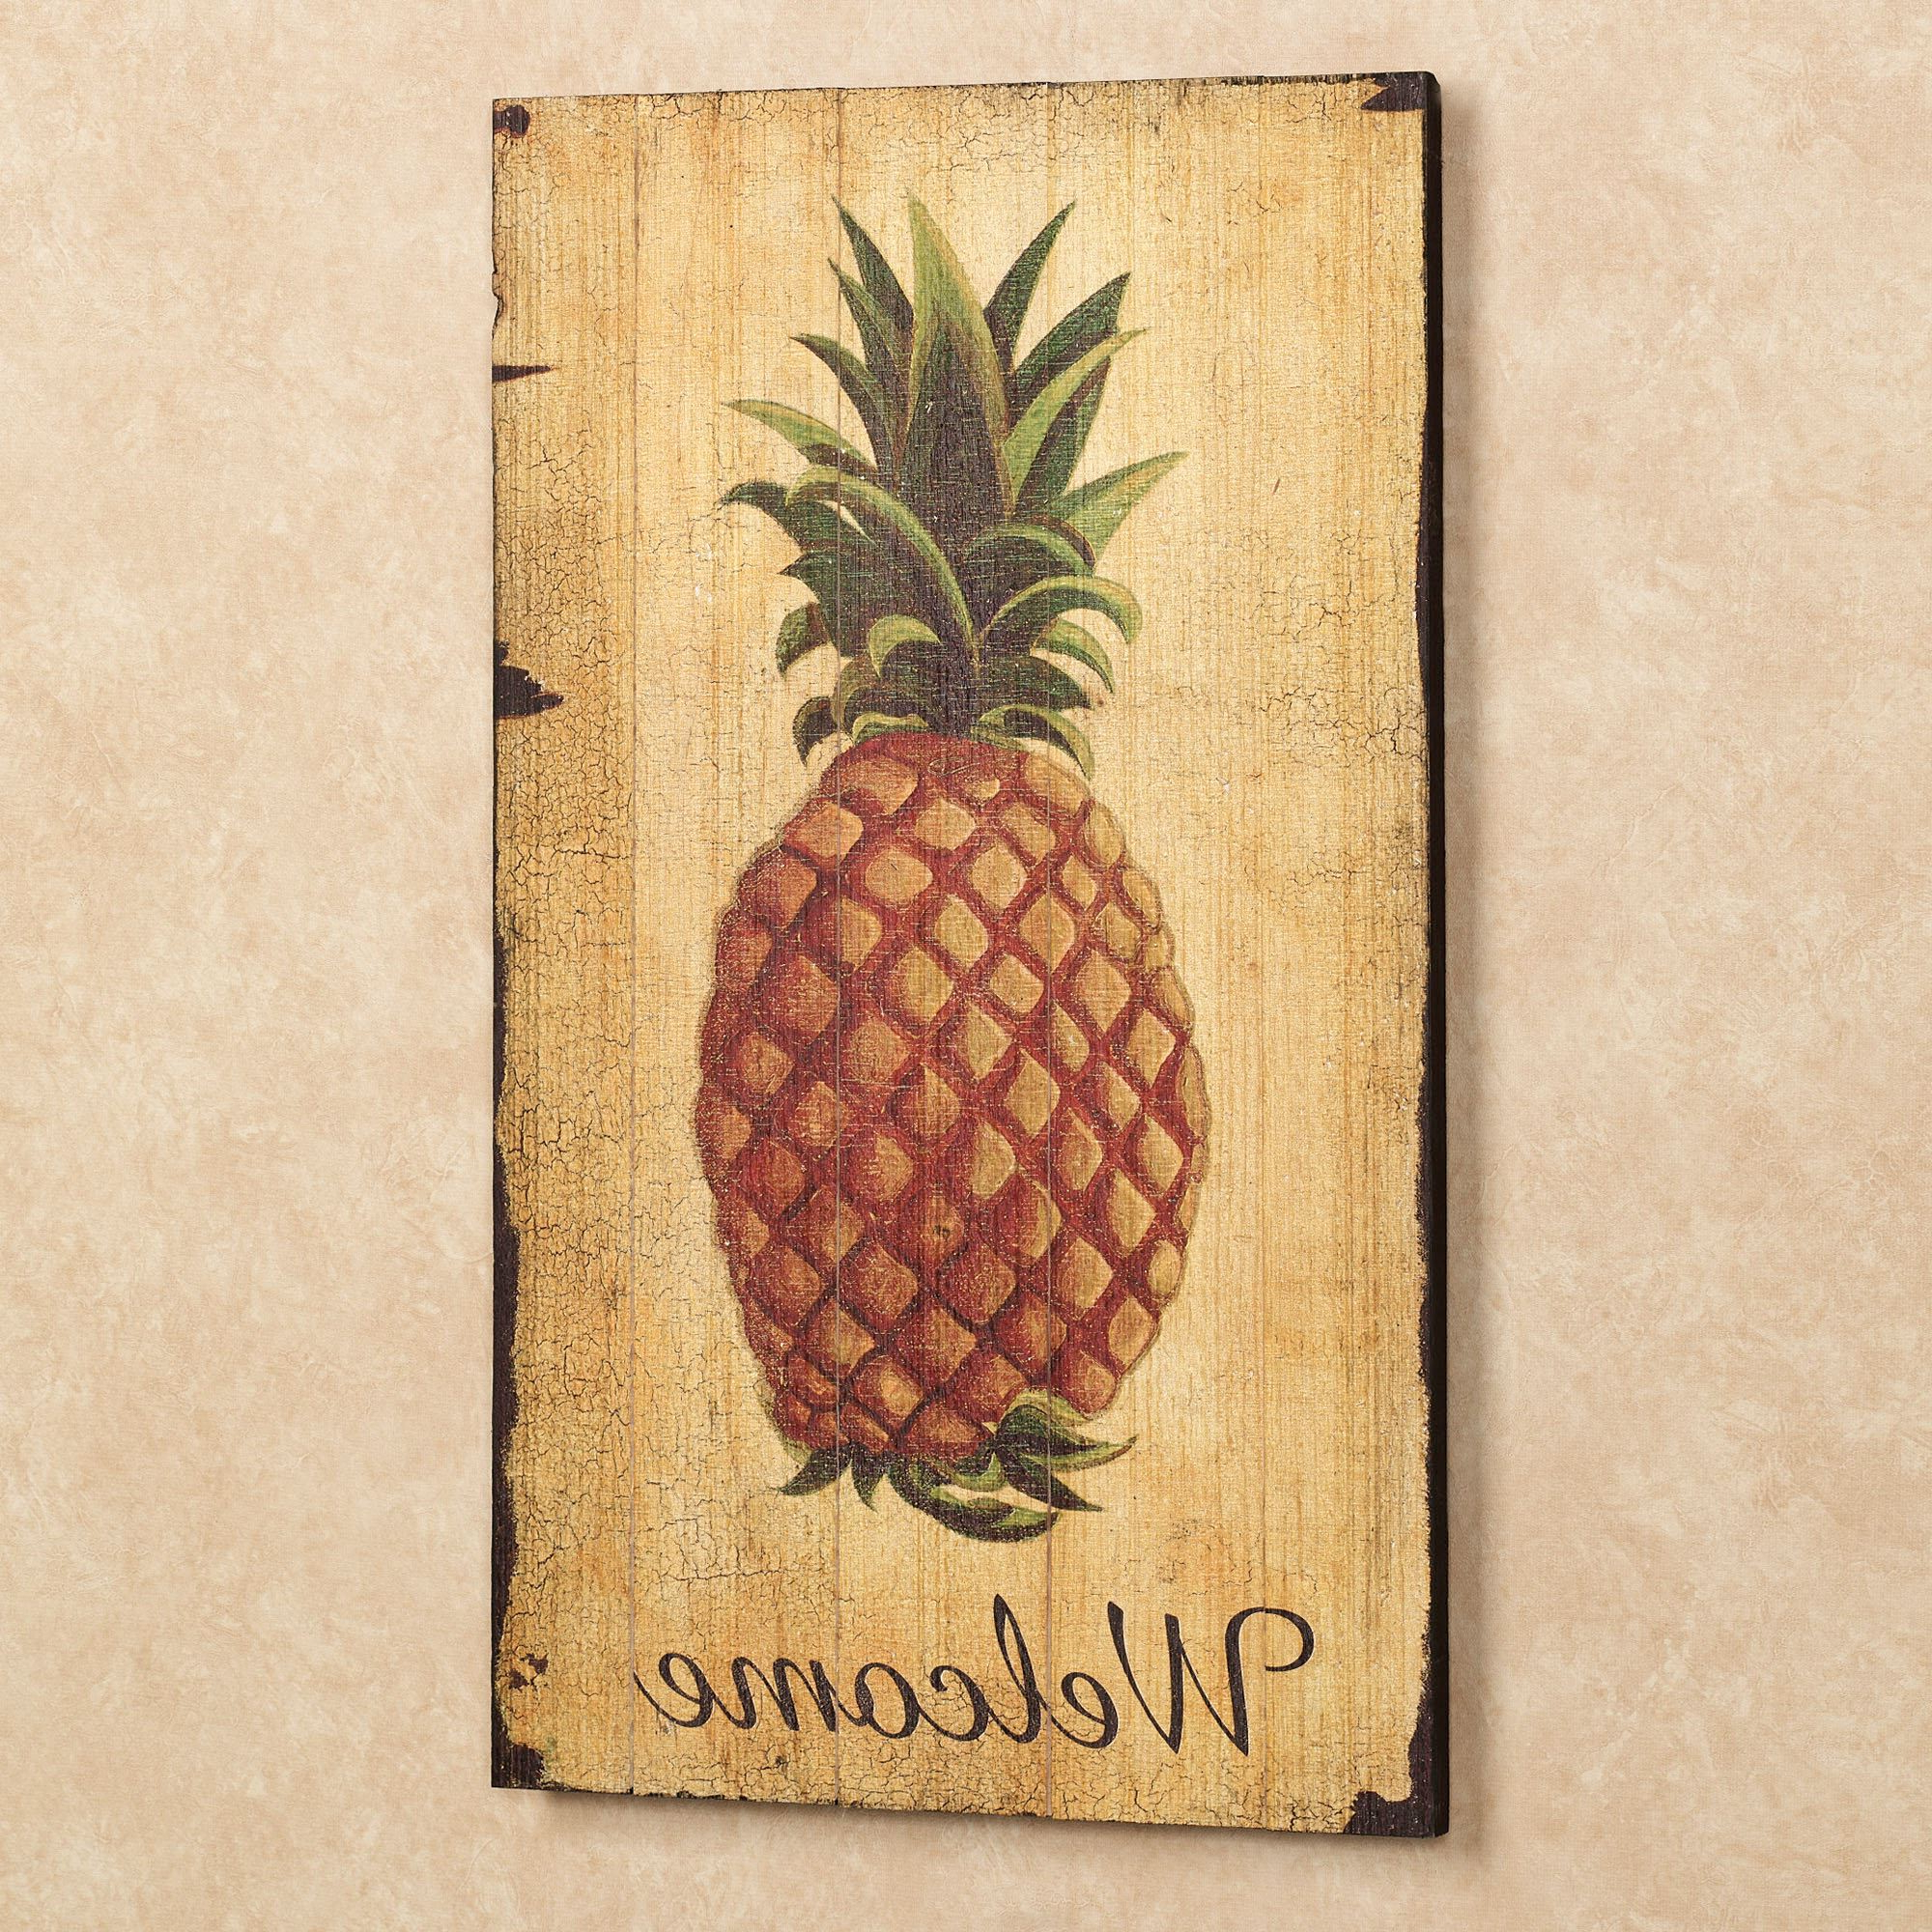 Pineapple Wall Decor Regarding Recent Pineapple Vintage Welcome Sign Wall Art (View 10 of 20)